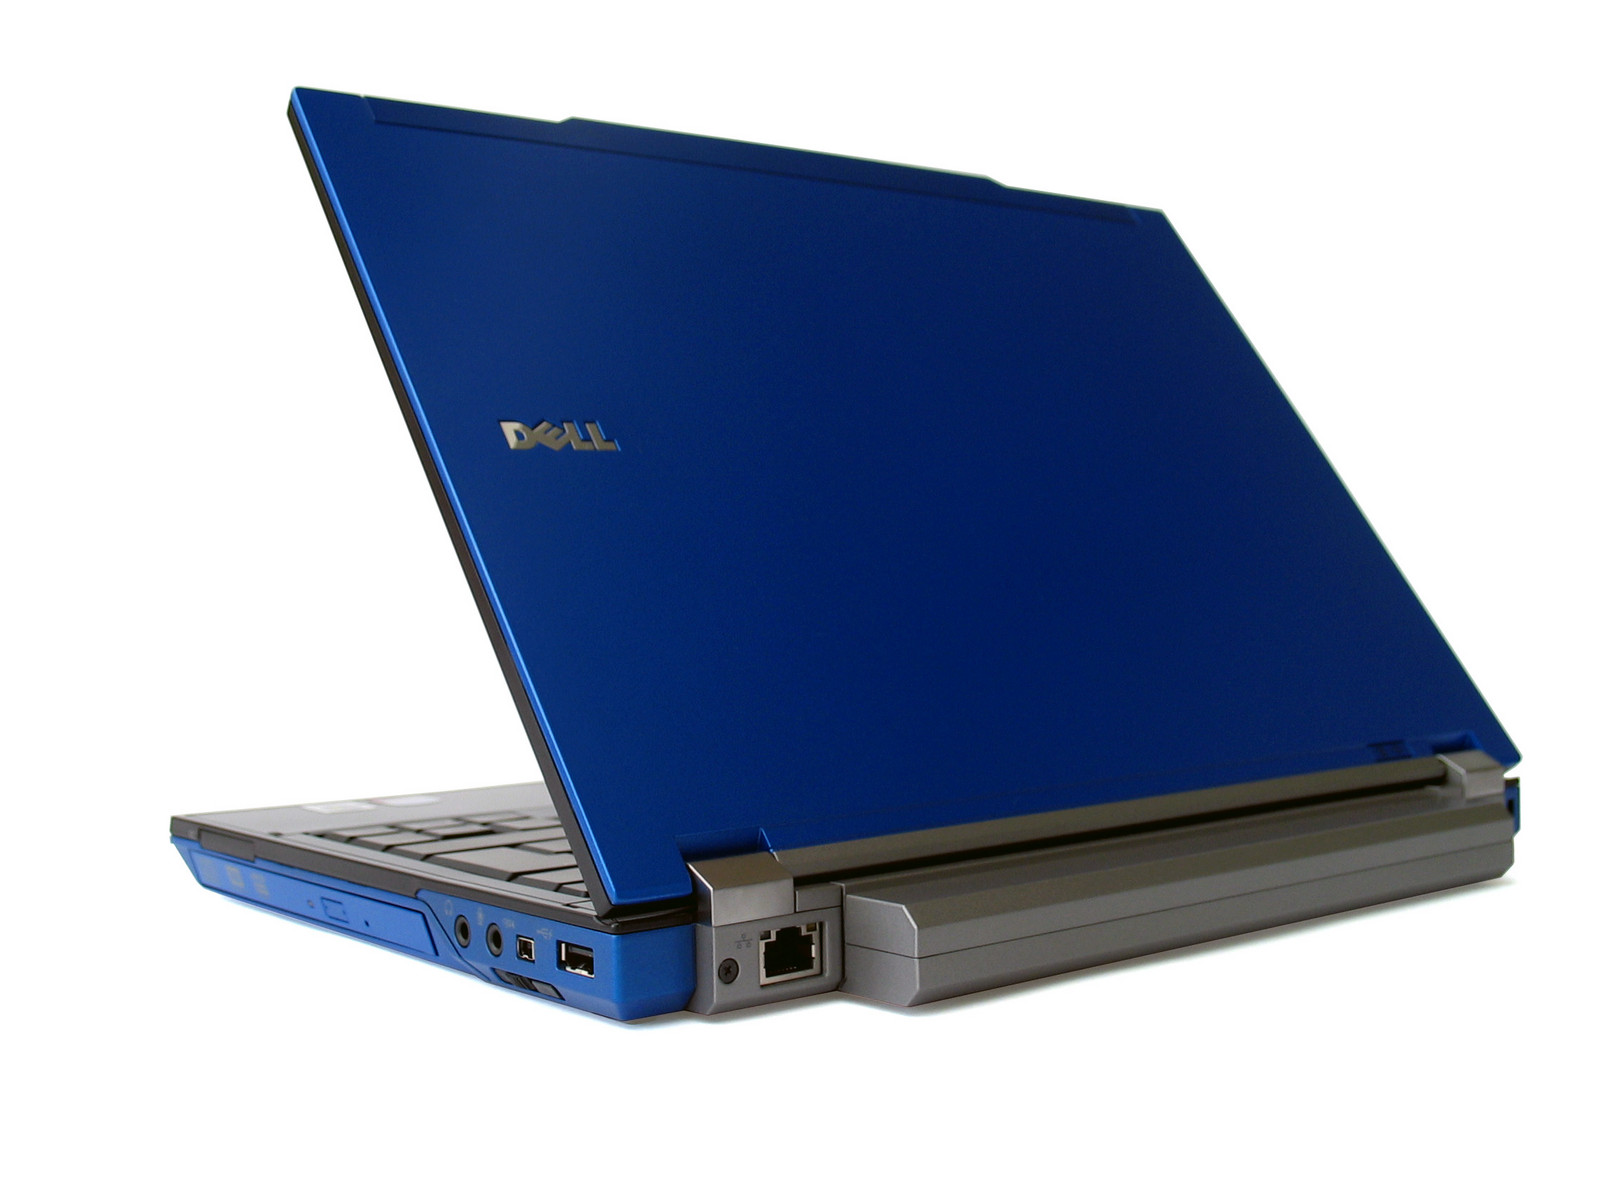 DELL LATITUDE X300 INTEL MOBILE CHIPSET TREIBER WINDOWS 7